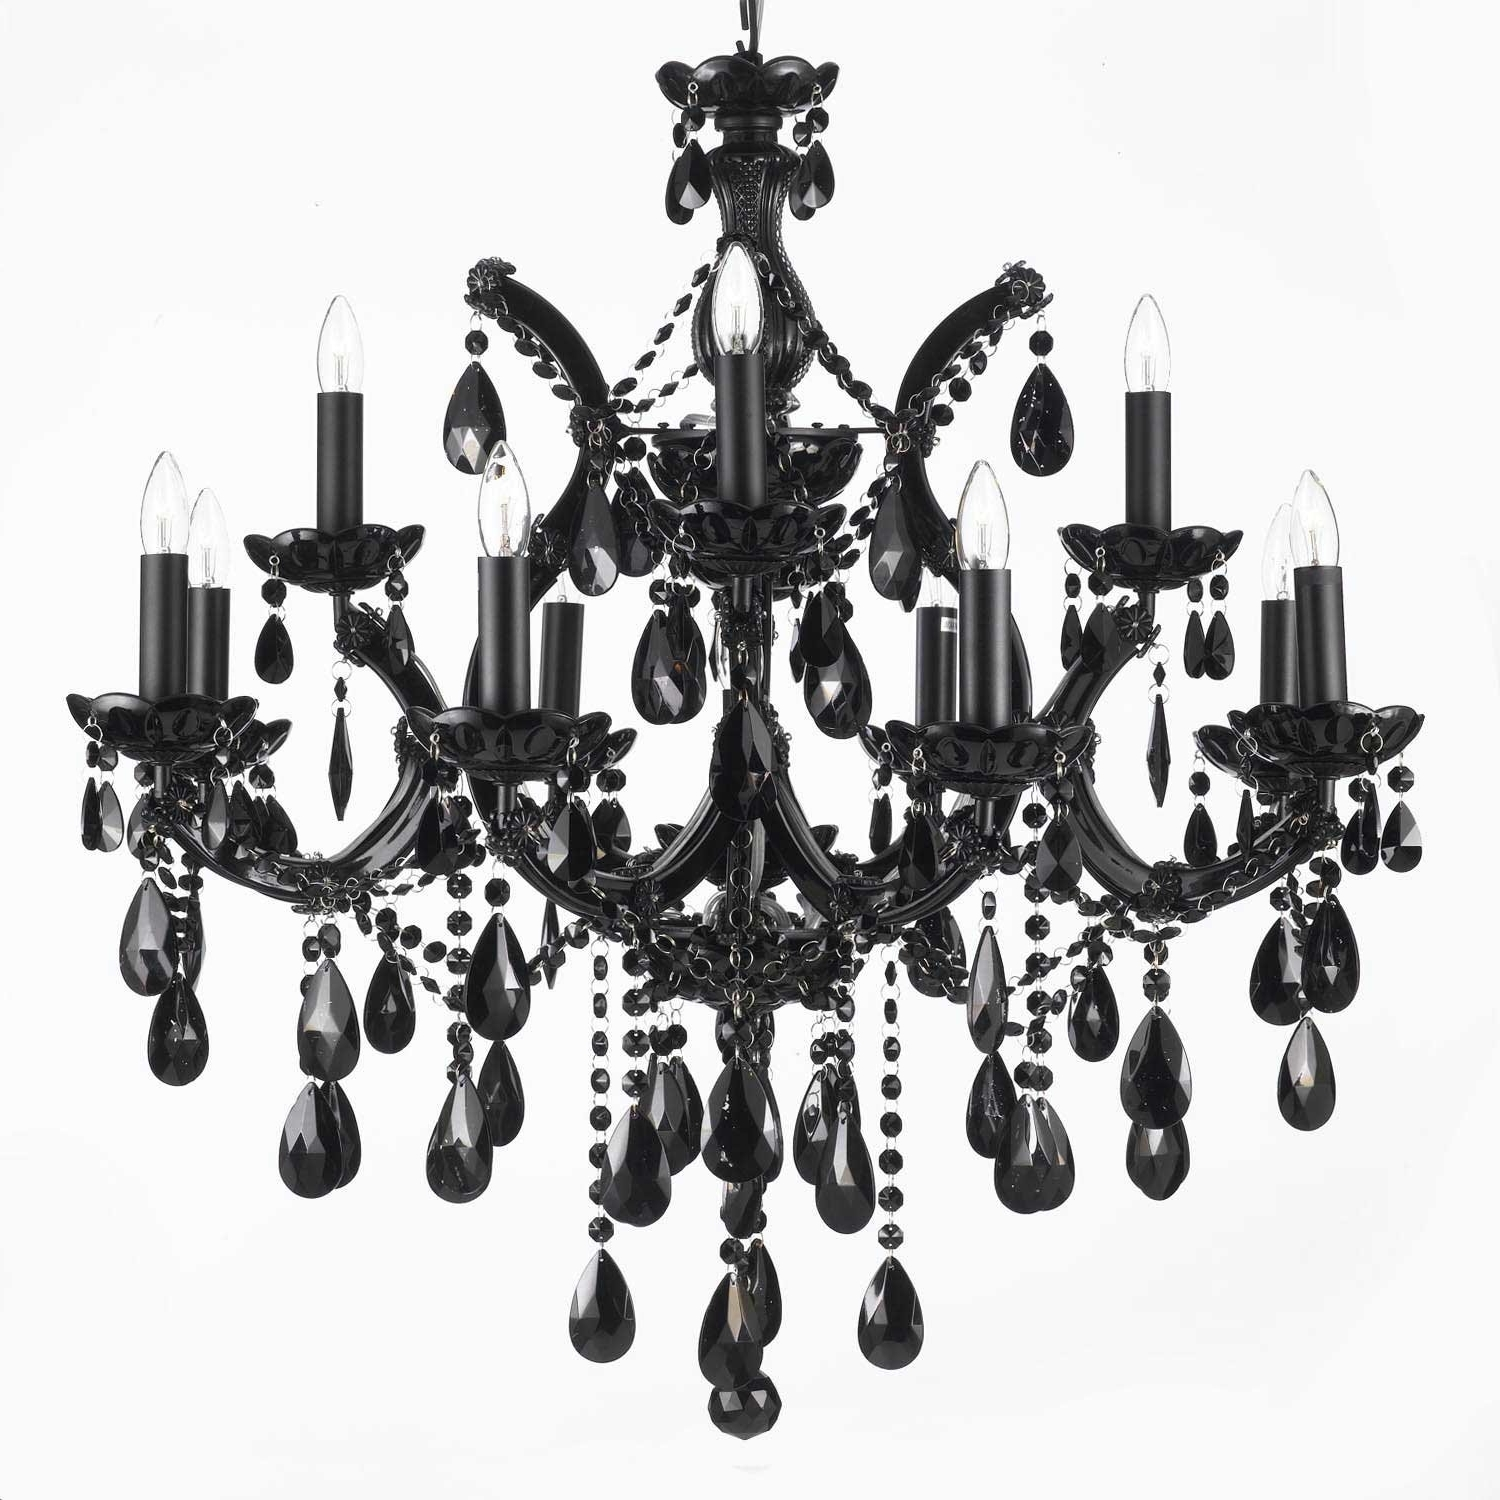 Jet Black Chandelier Crystal Lighting 30X28 – – Amazon Throughout Recent Black Chandelier (View 10 of 15)